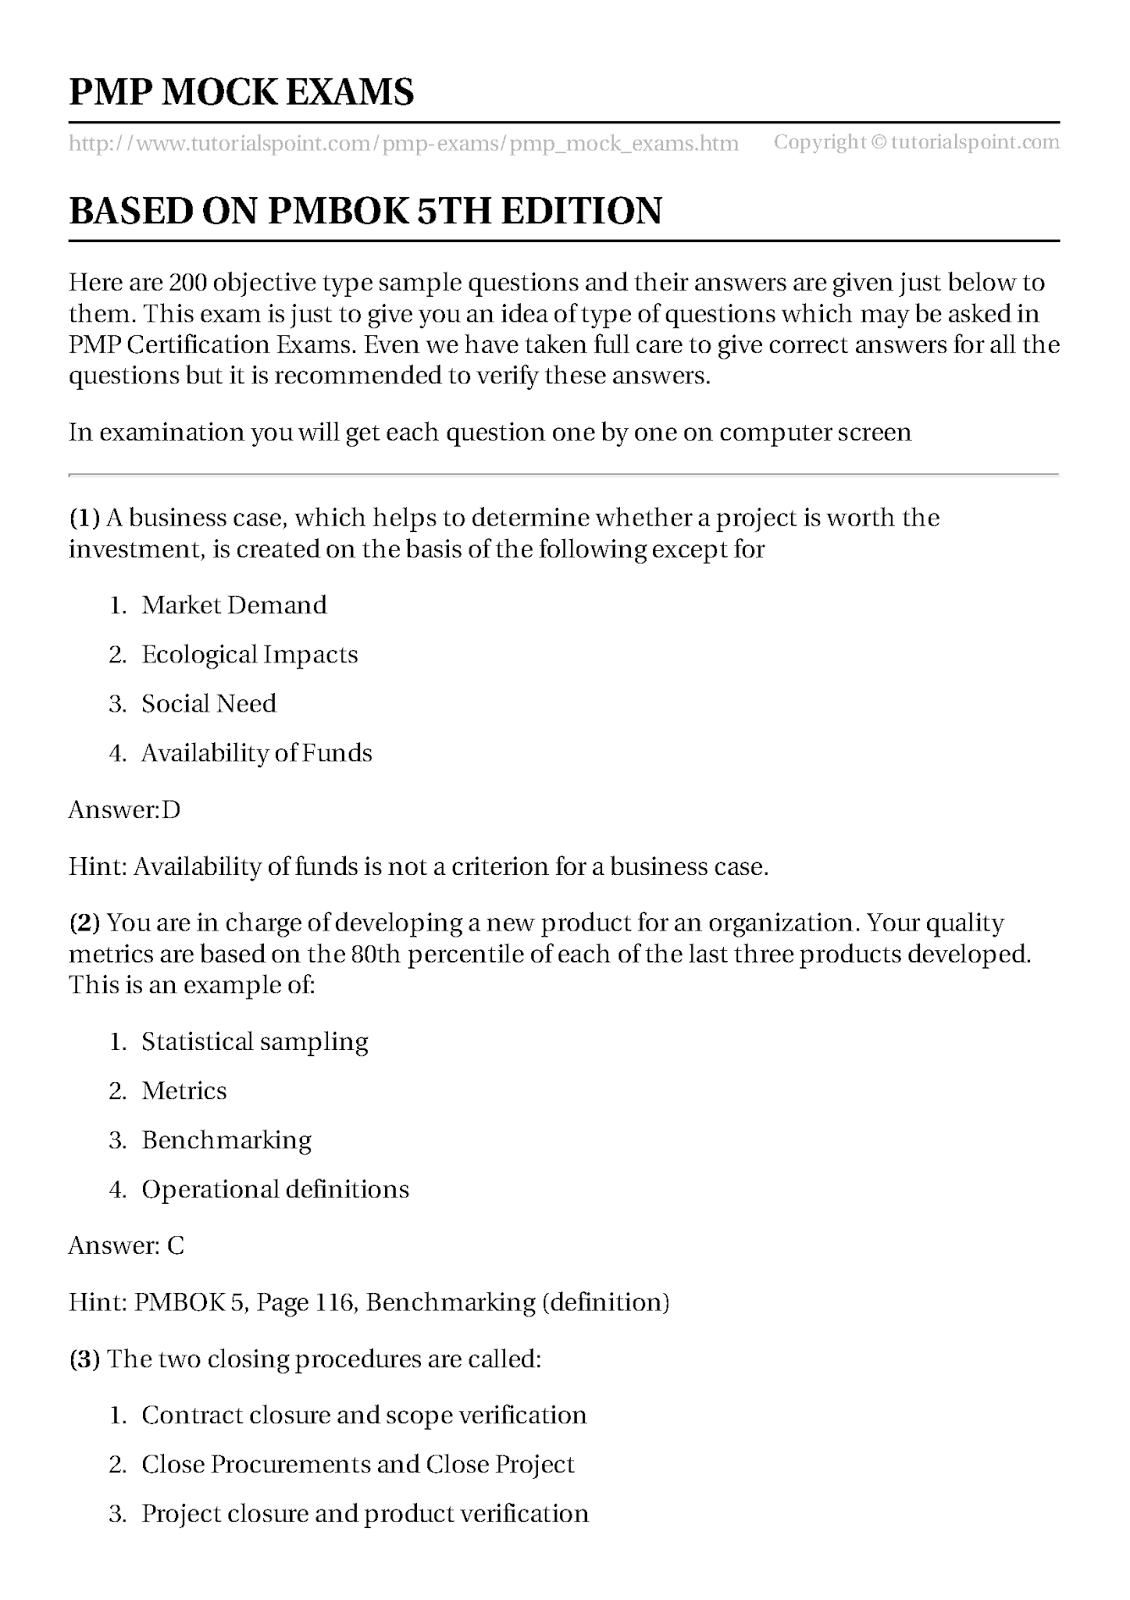 April 2017 engineering management for all the questions but it is recommended to verify these answers 1betcityfo Images